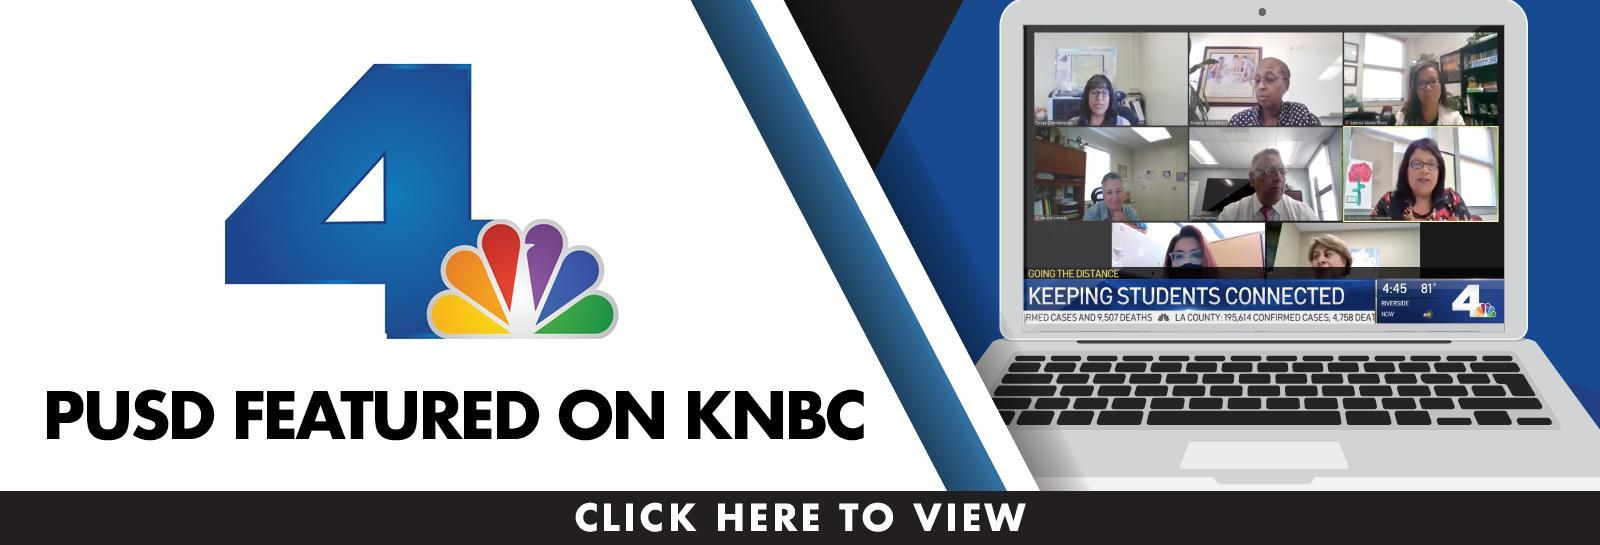 PUSD Featured on KNBC